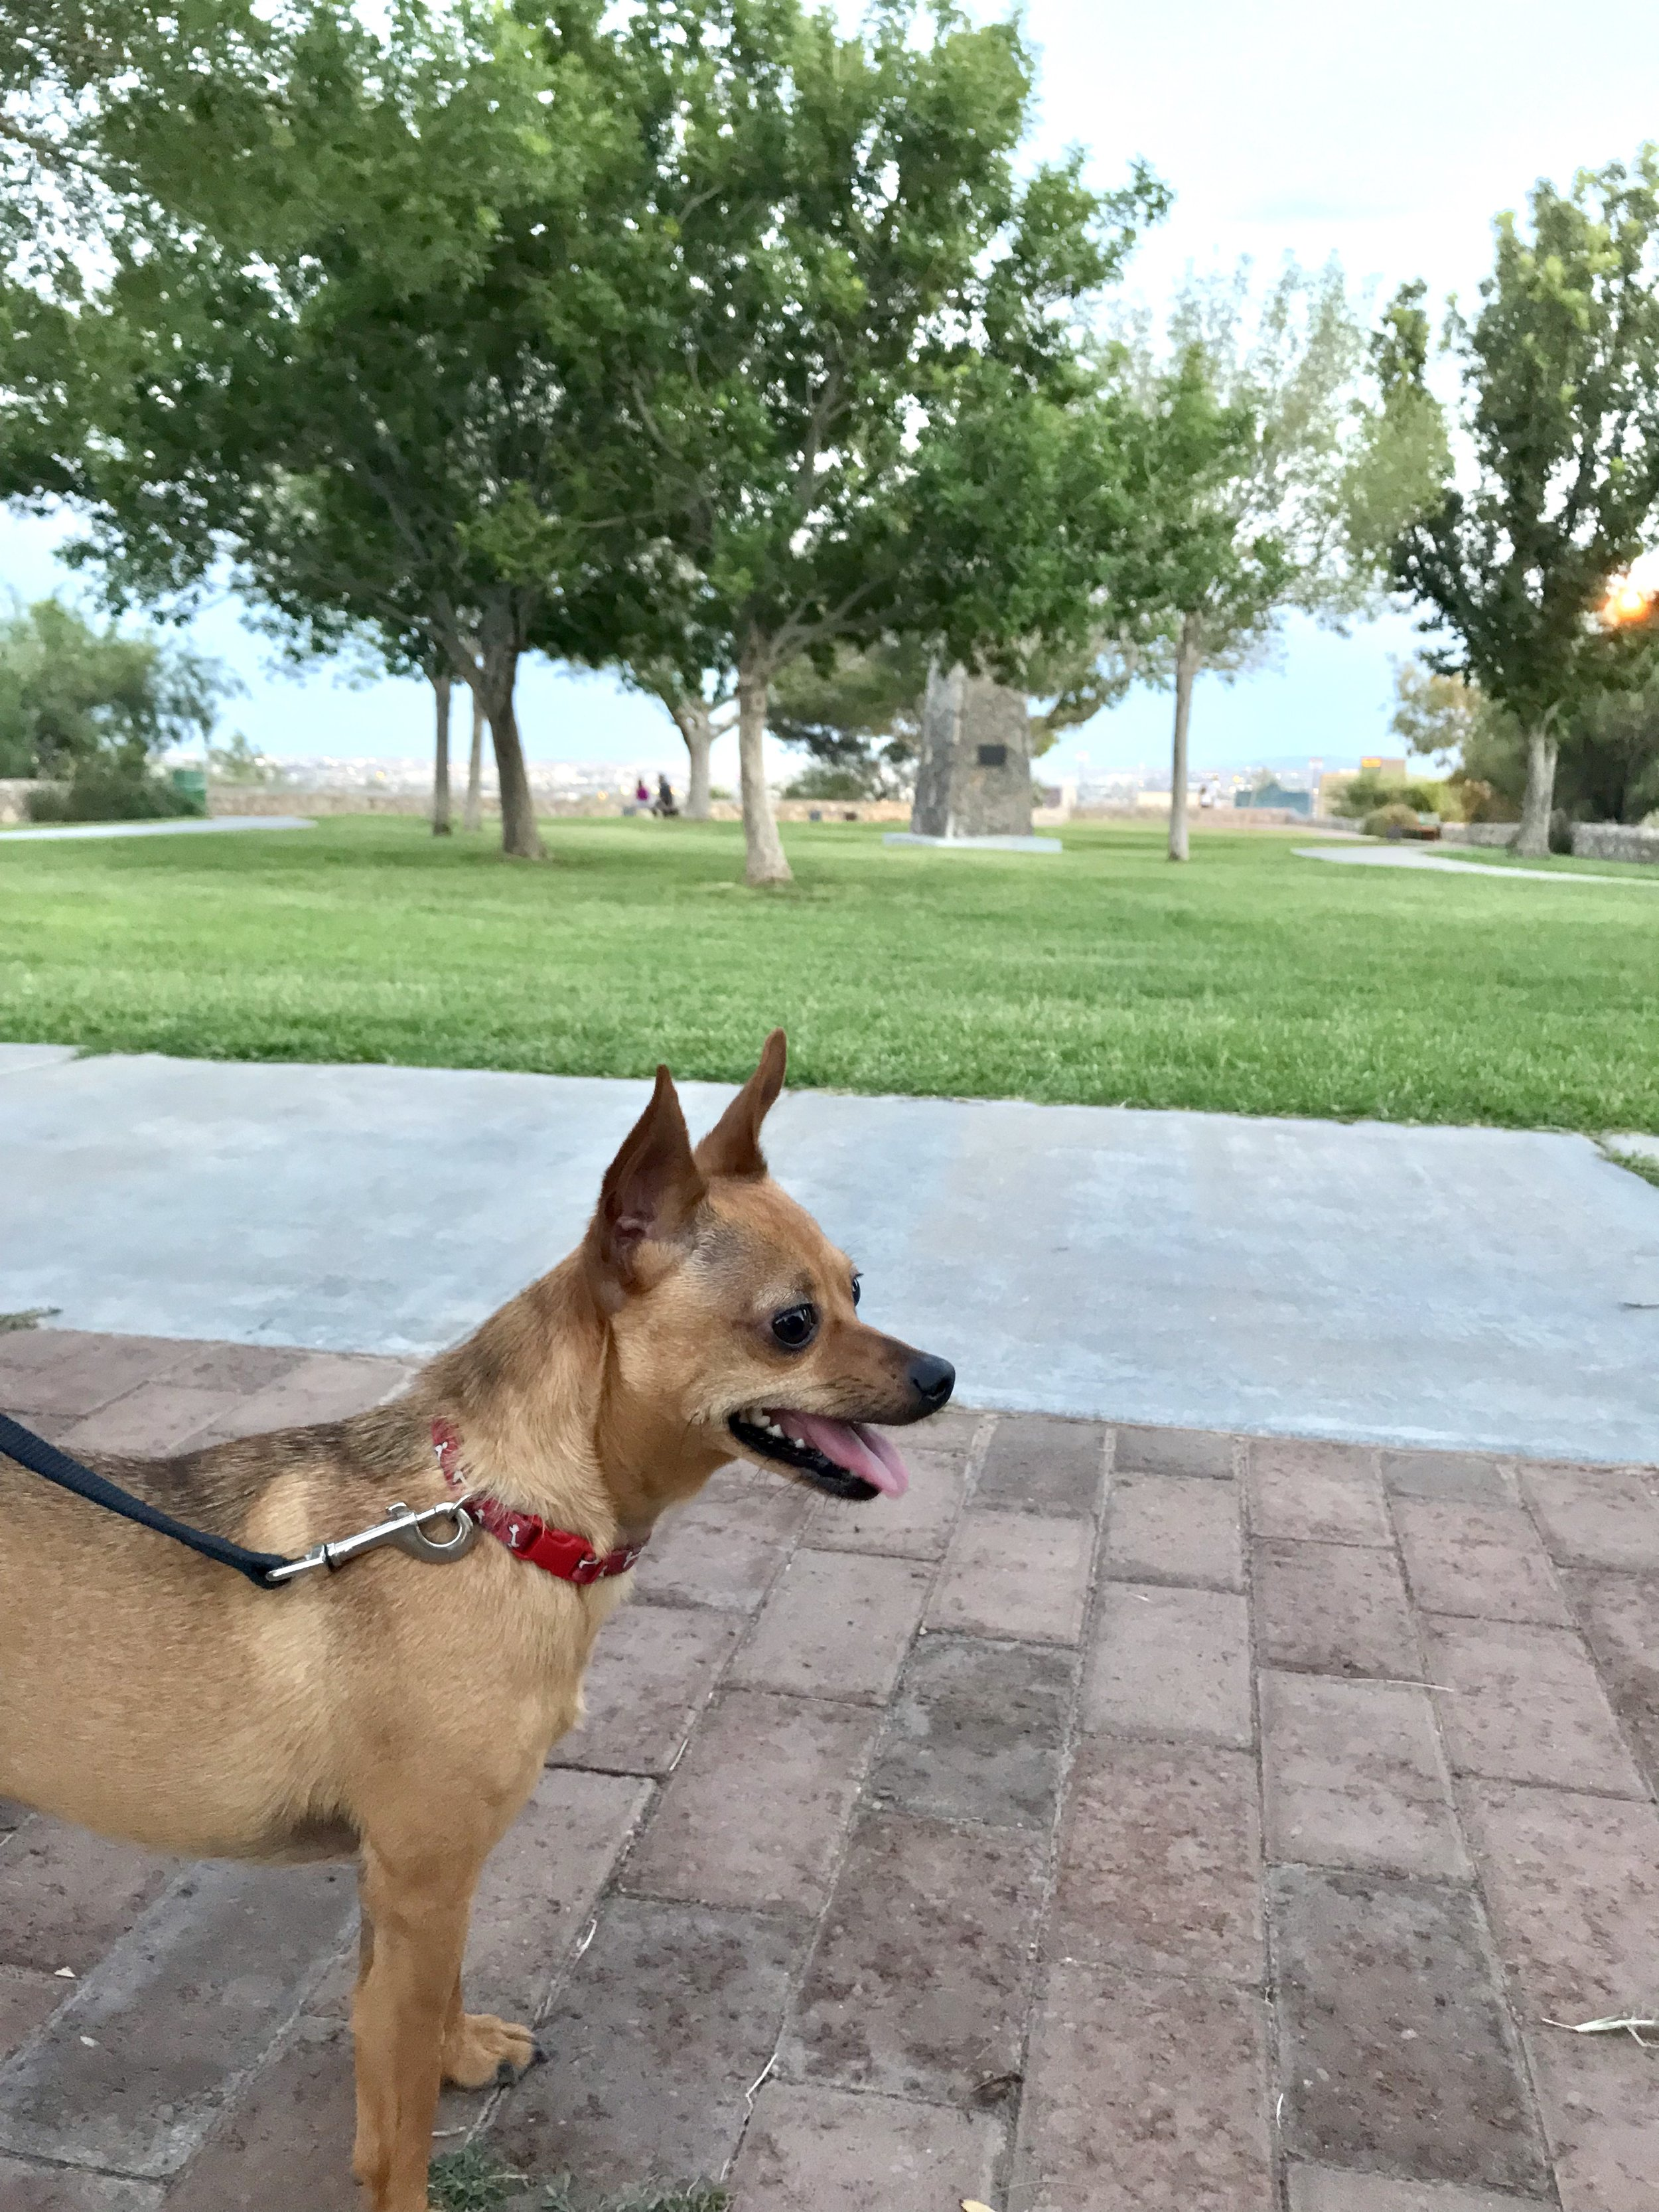 Our little chihuahua, Gracie, loves sniffing around and walking to this park.